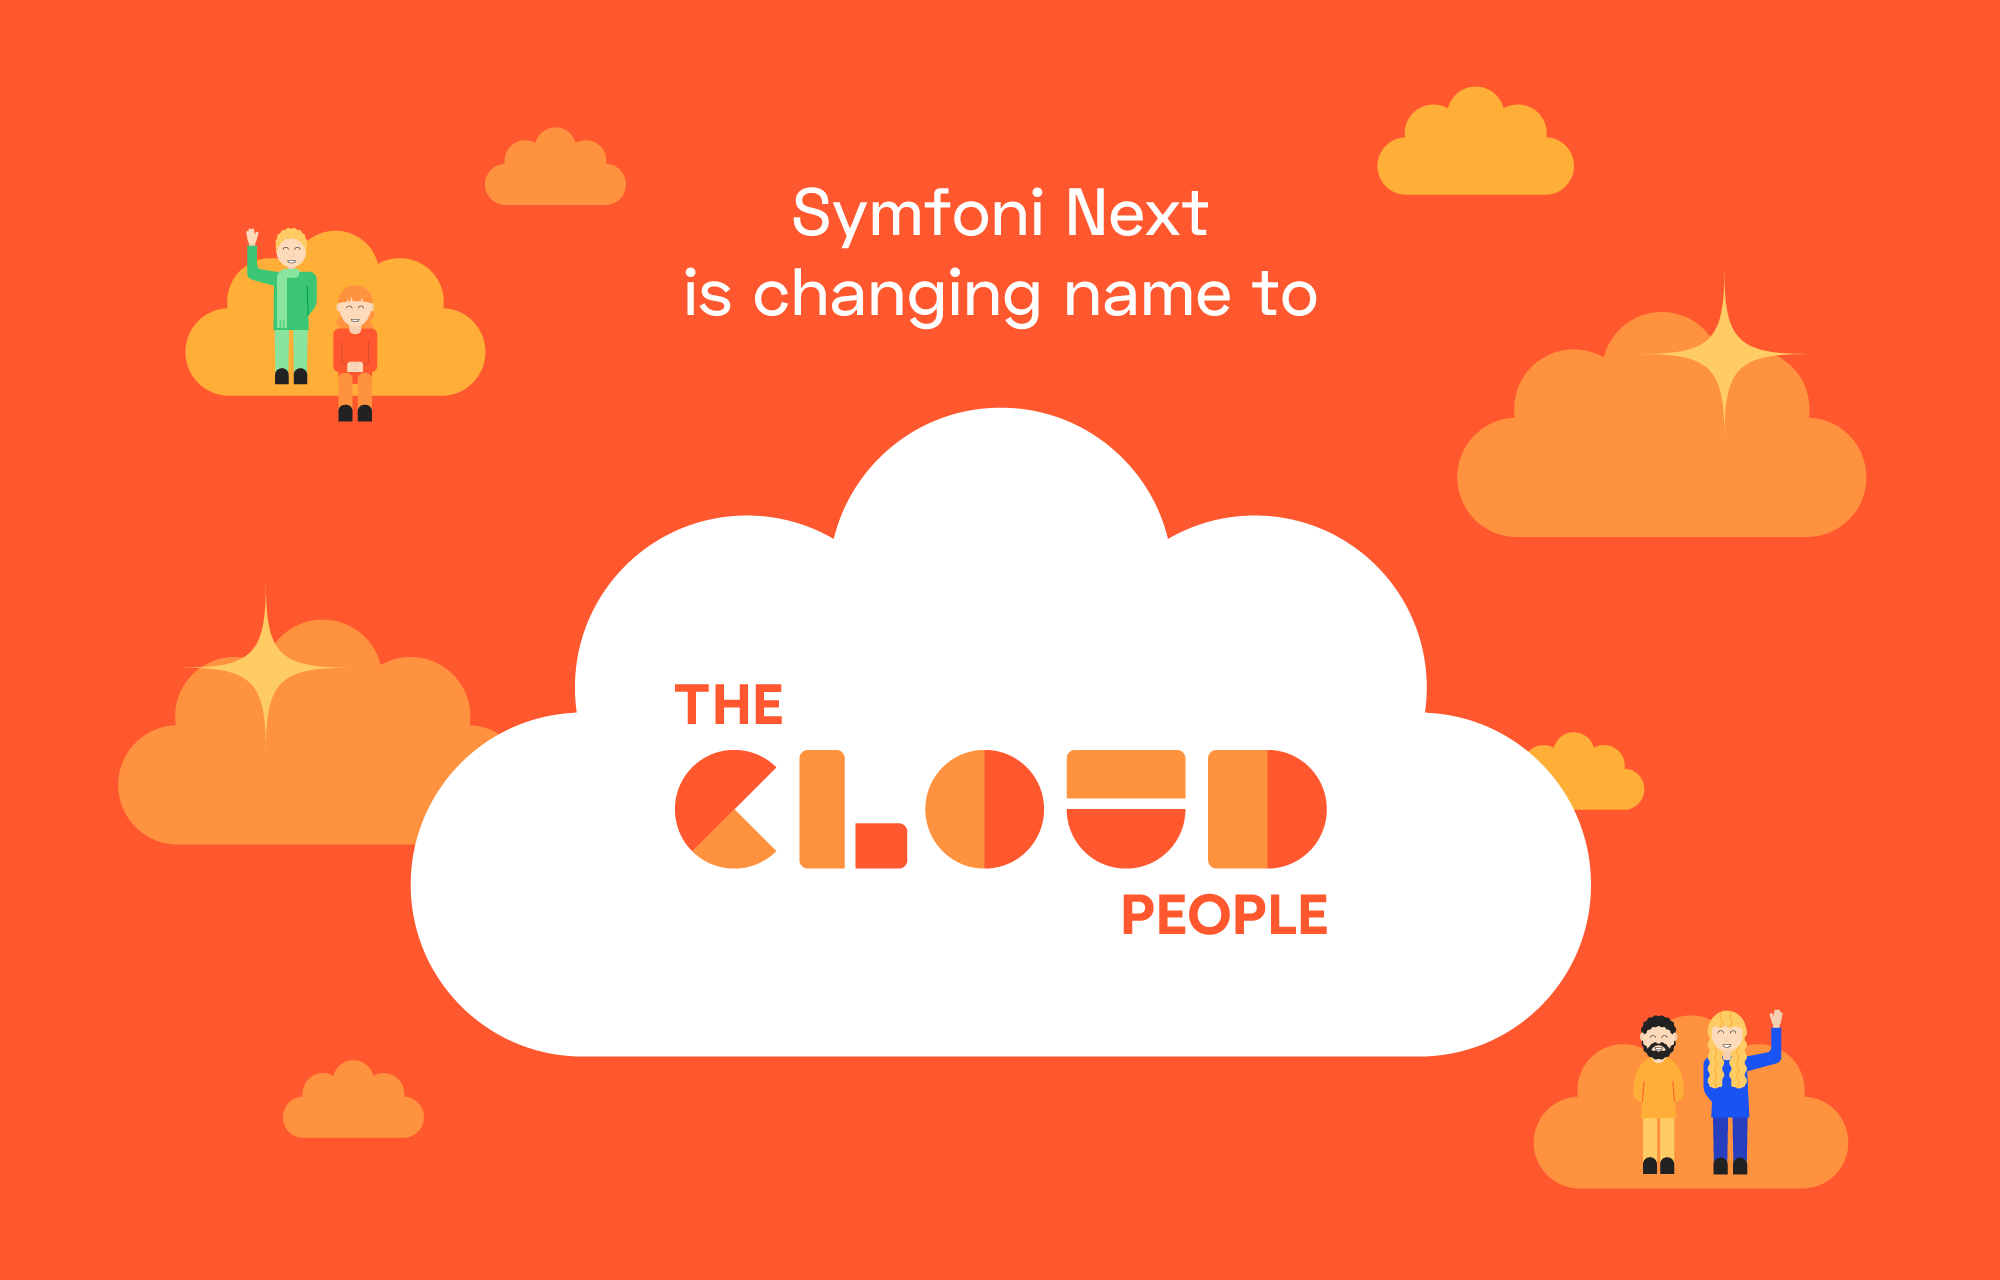 Symfoni Next is changing name to The Cloud People